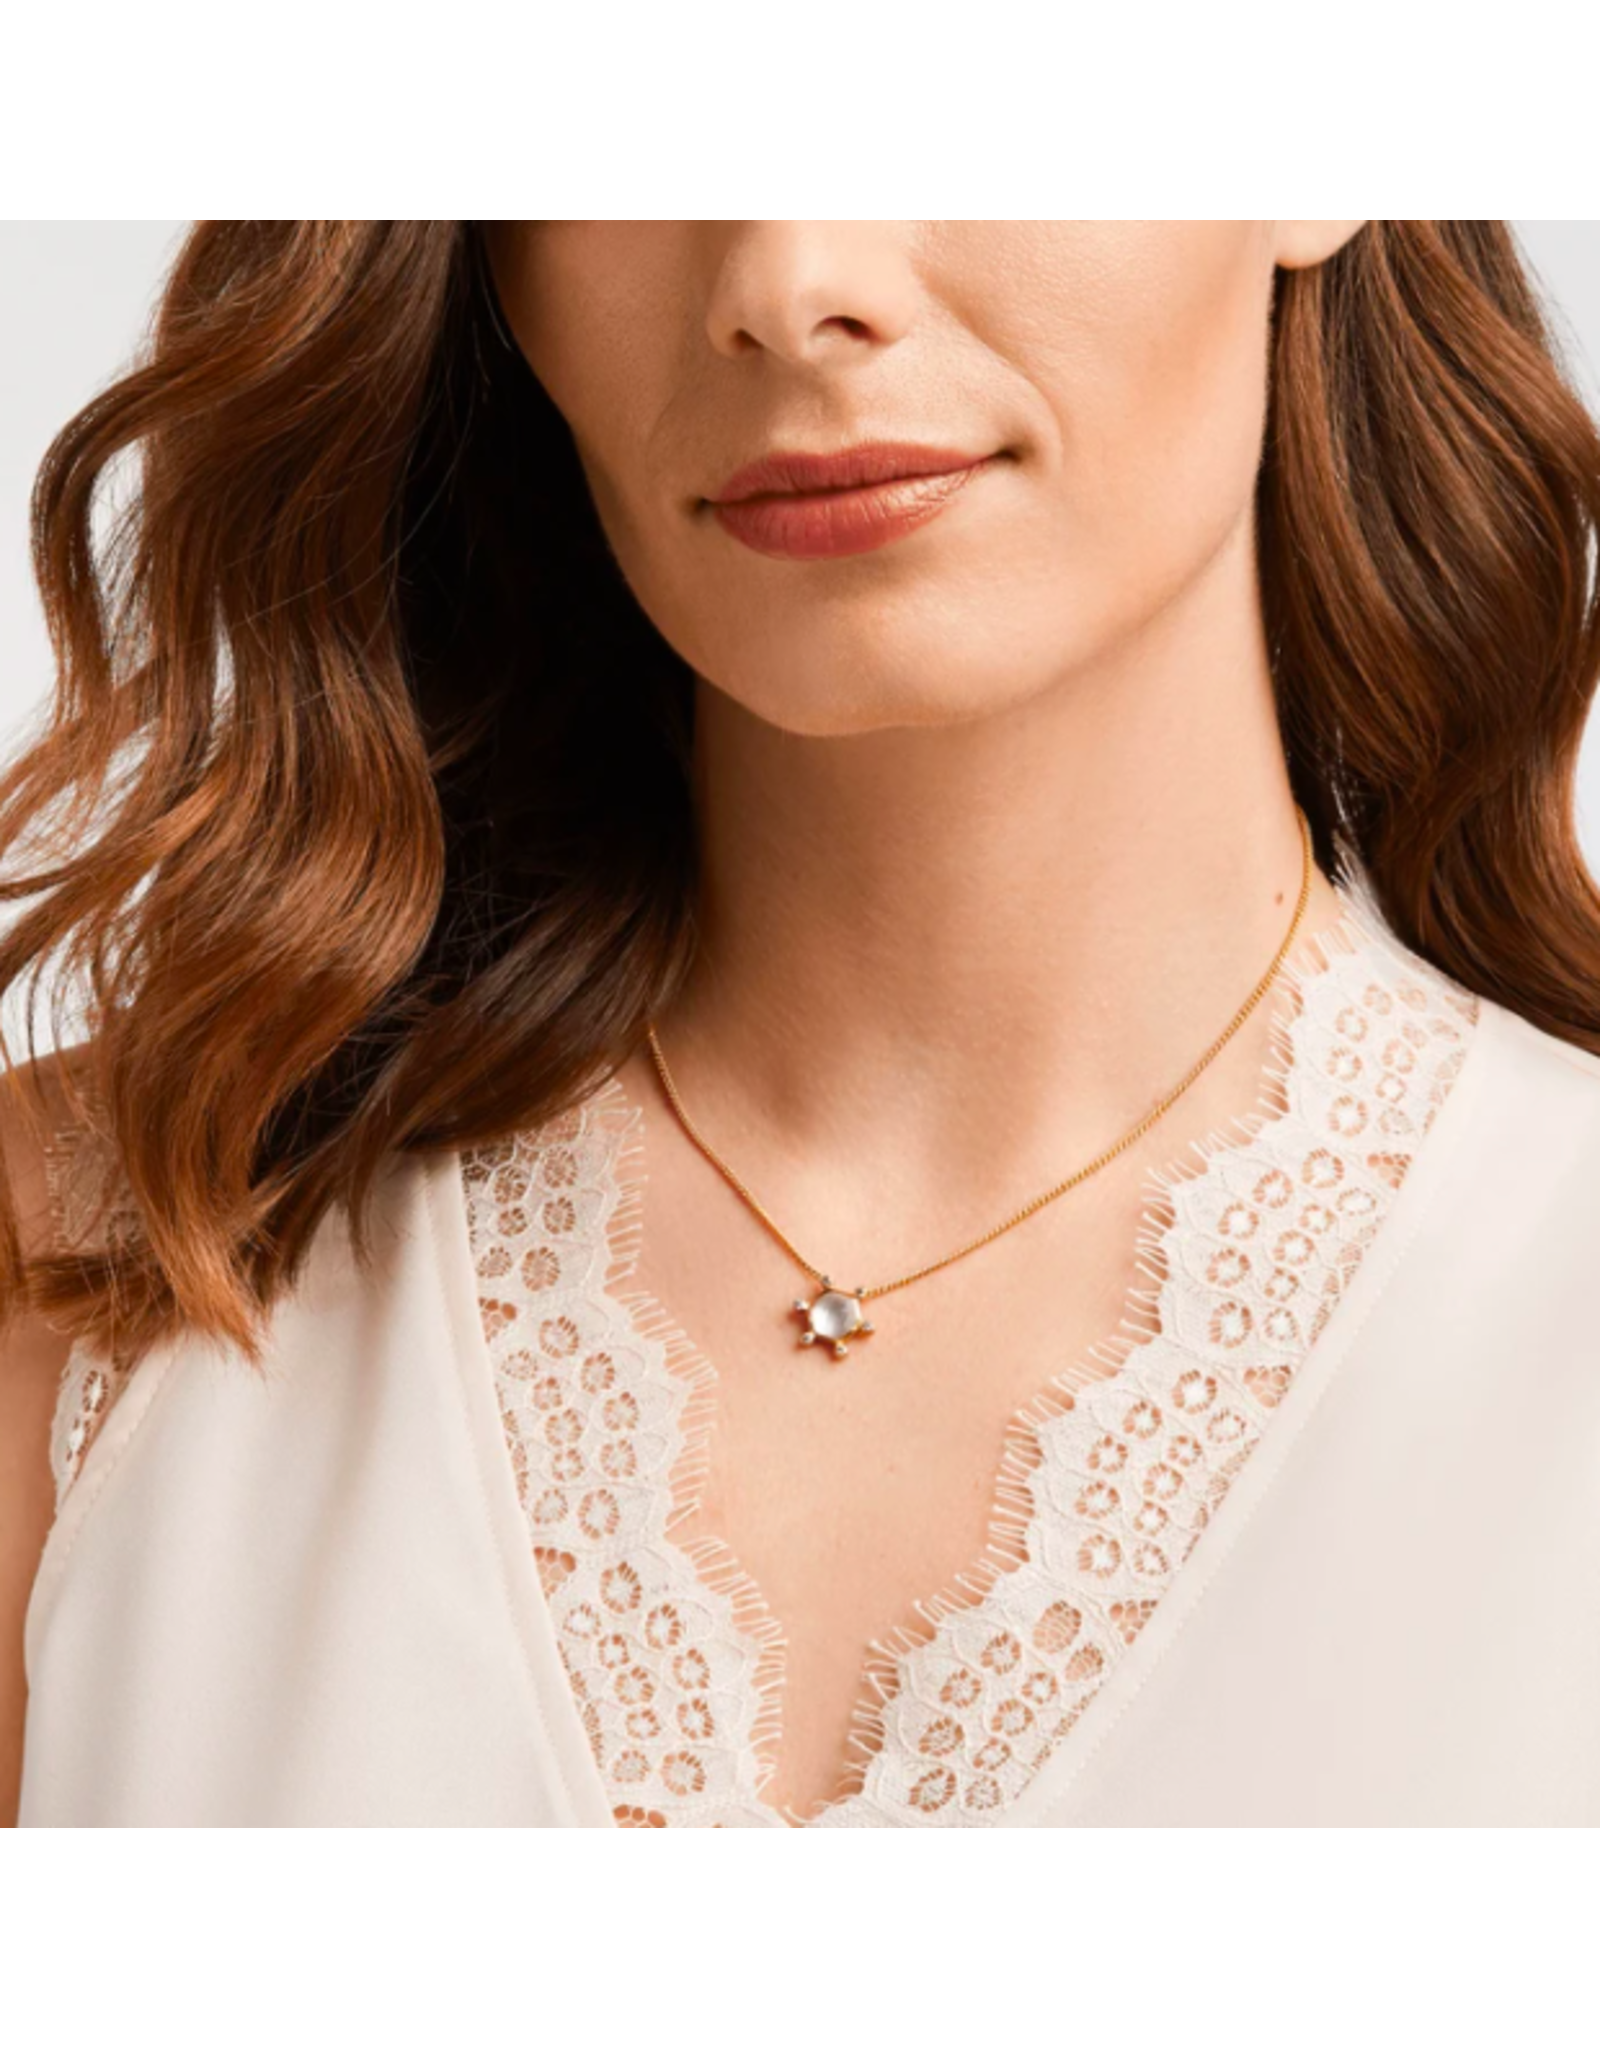 Julie Vos Cosmo Solitaire Necklace by Julie Vos in Iridescent Clear Crystal